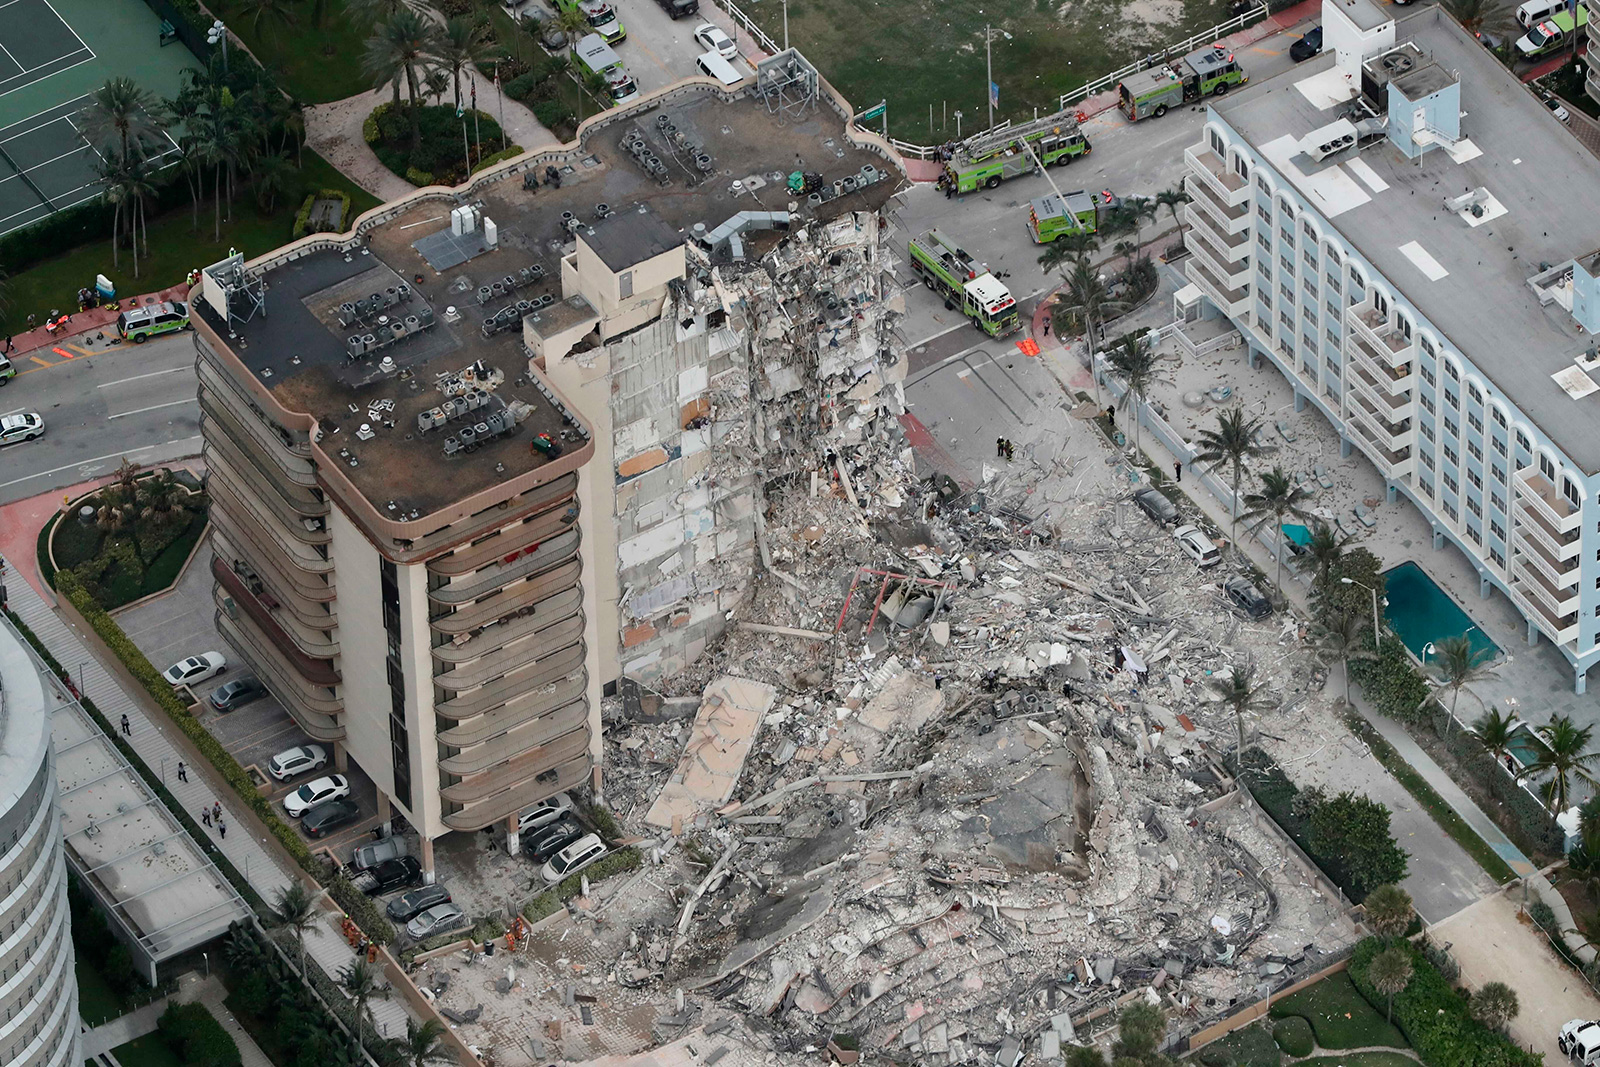 This aerial photo shows part of the 12-story oceanfront Champlain Towers South Condo that collapsed early Thursday, June 24, in Surfside, Florida.